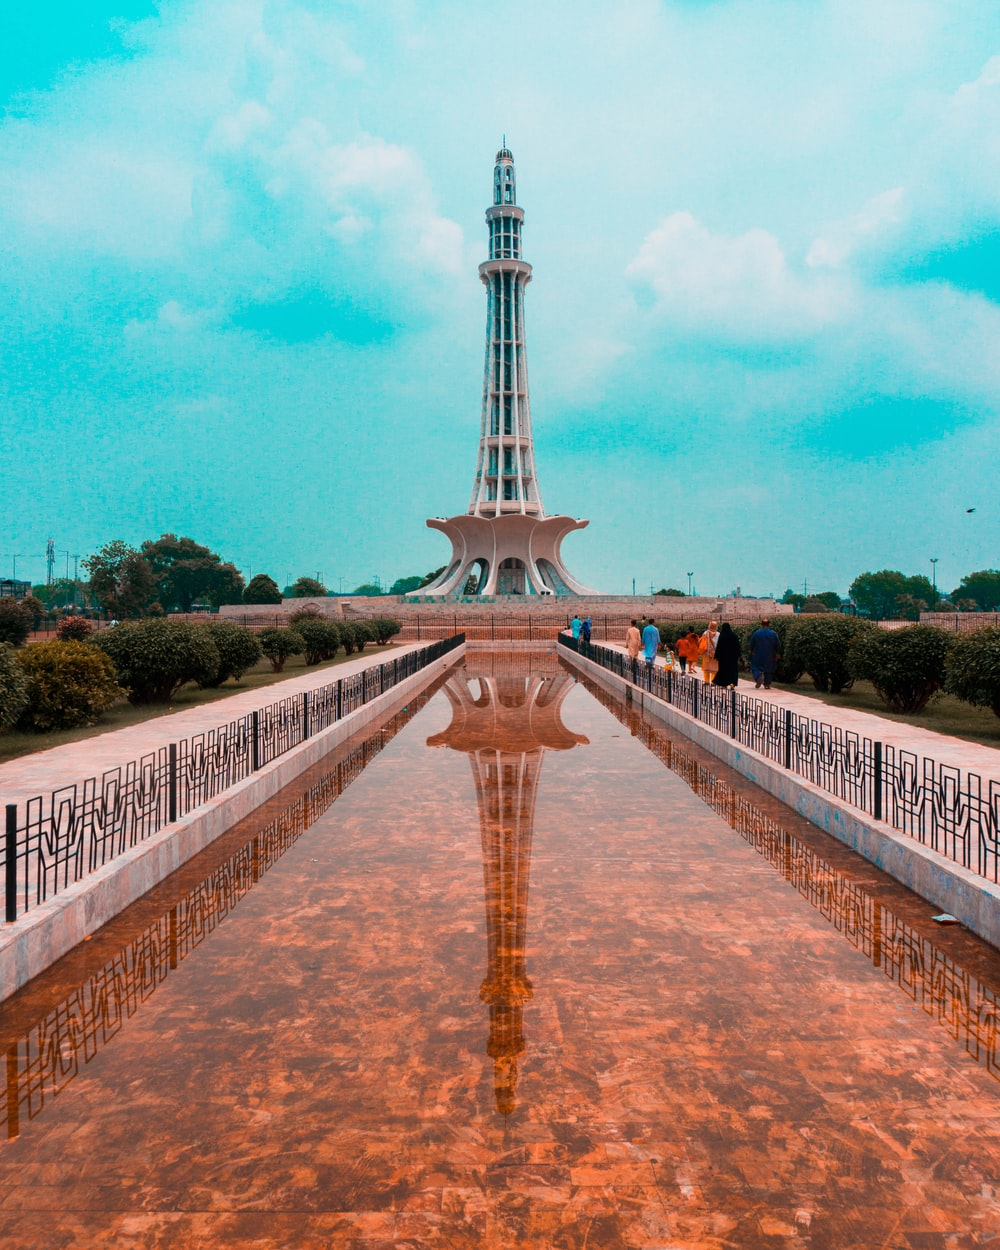 500+ Pakistan Pictures [HD] | Download Free Images on Unsplash